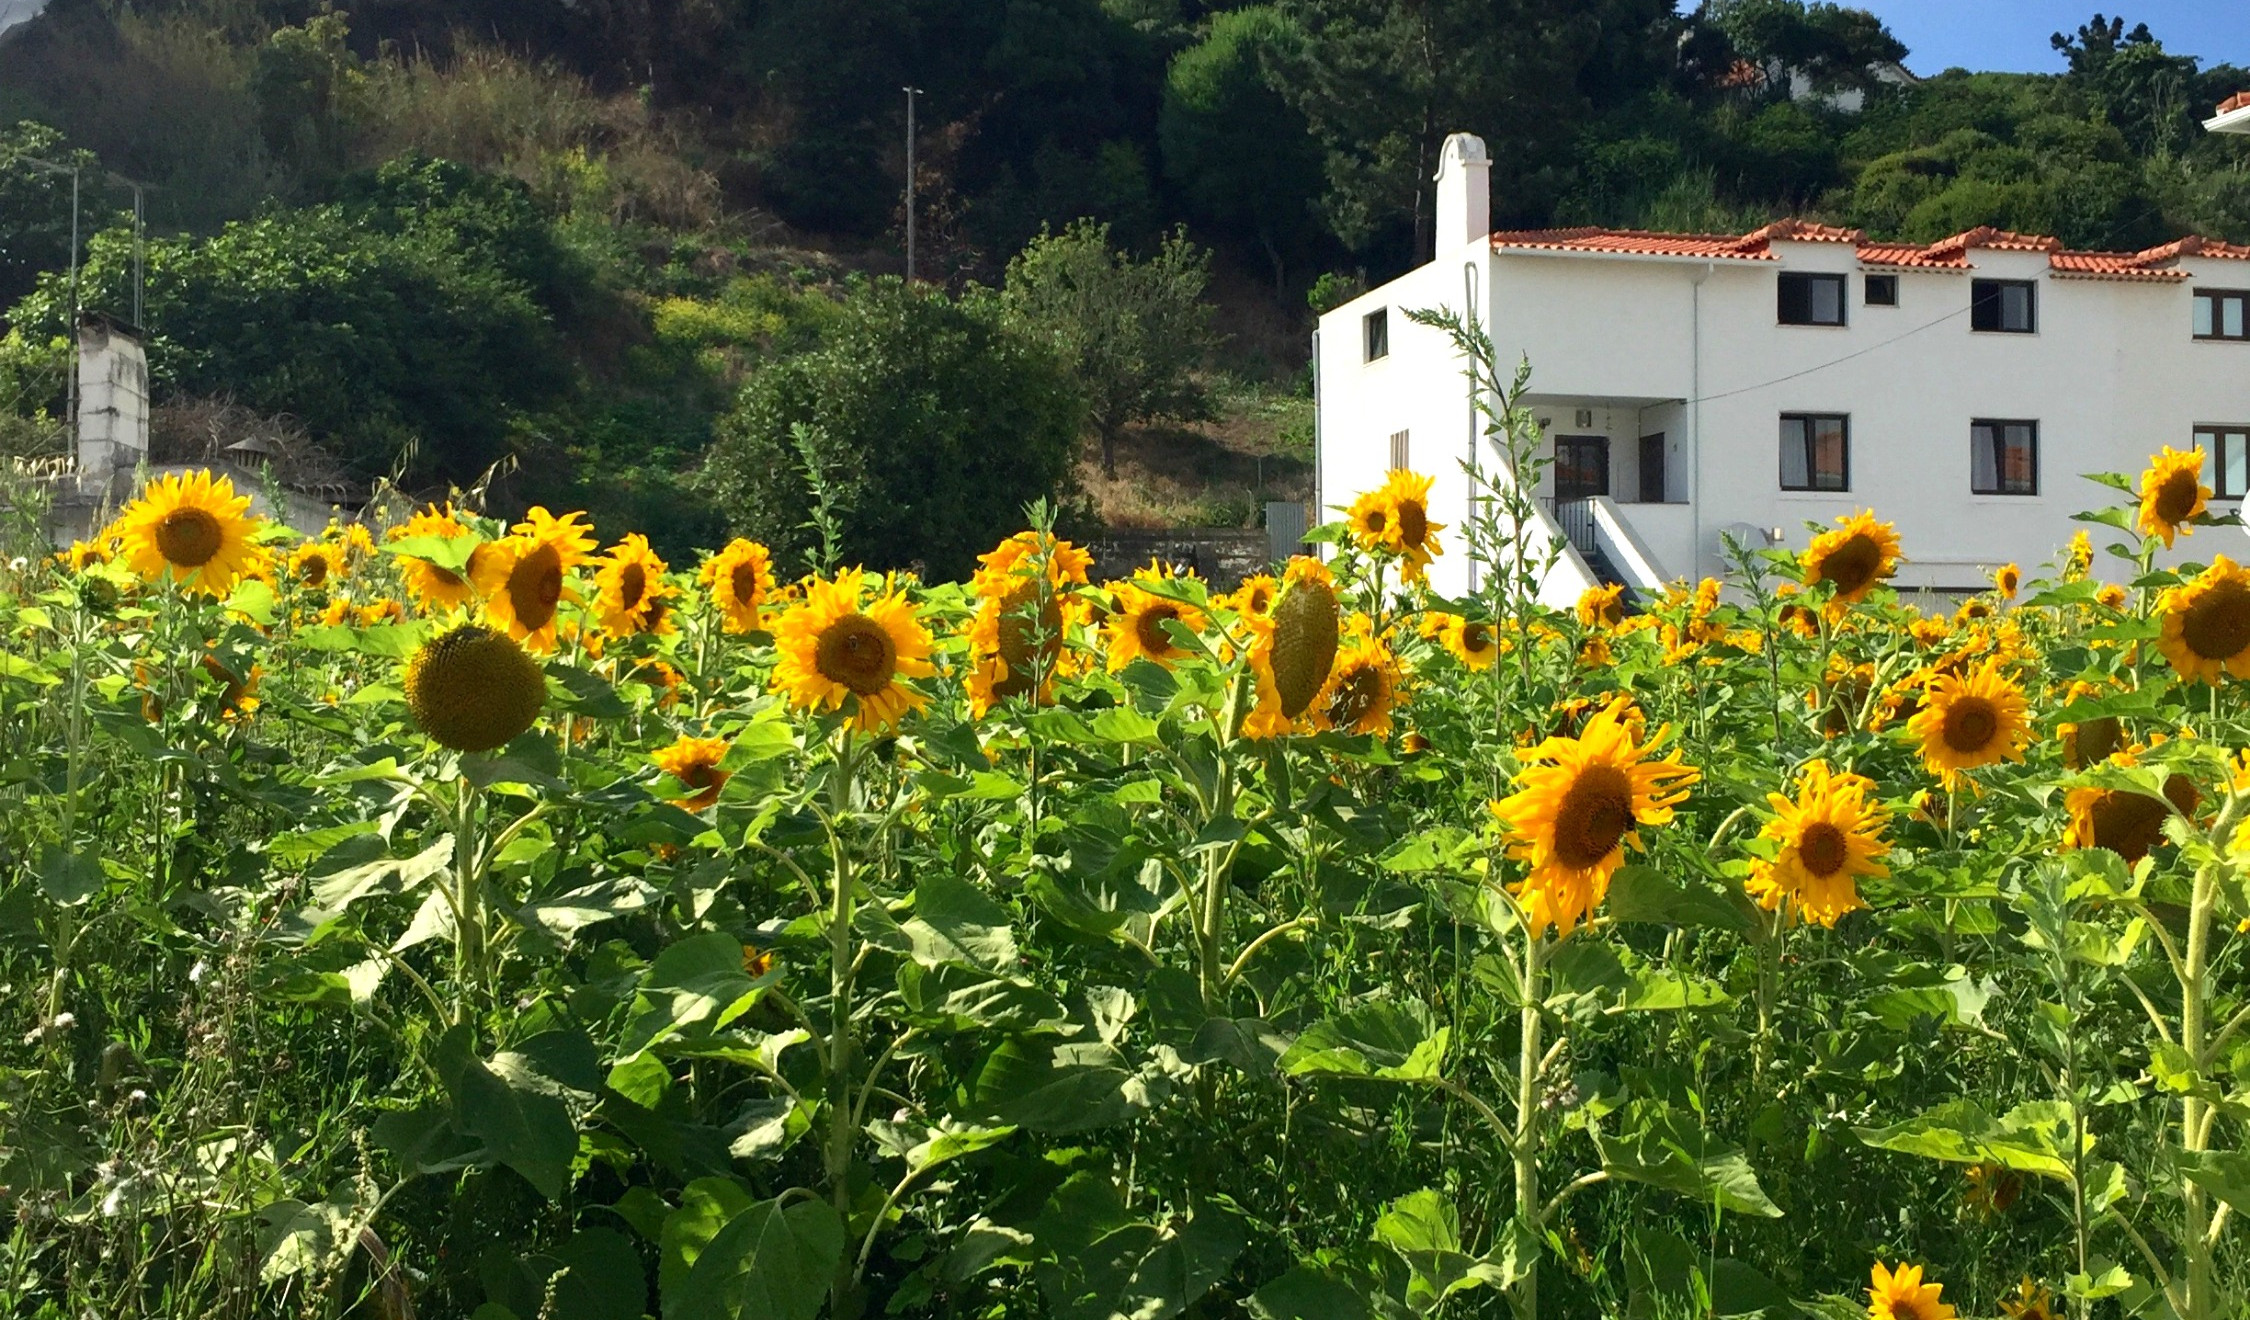 Sunflowers growing wildly in Foz do Arelho